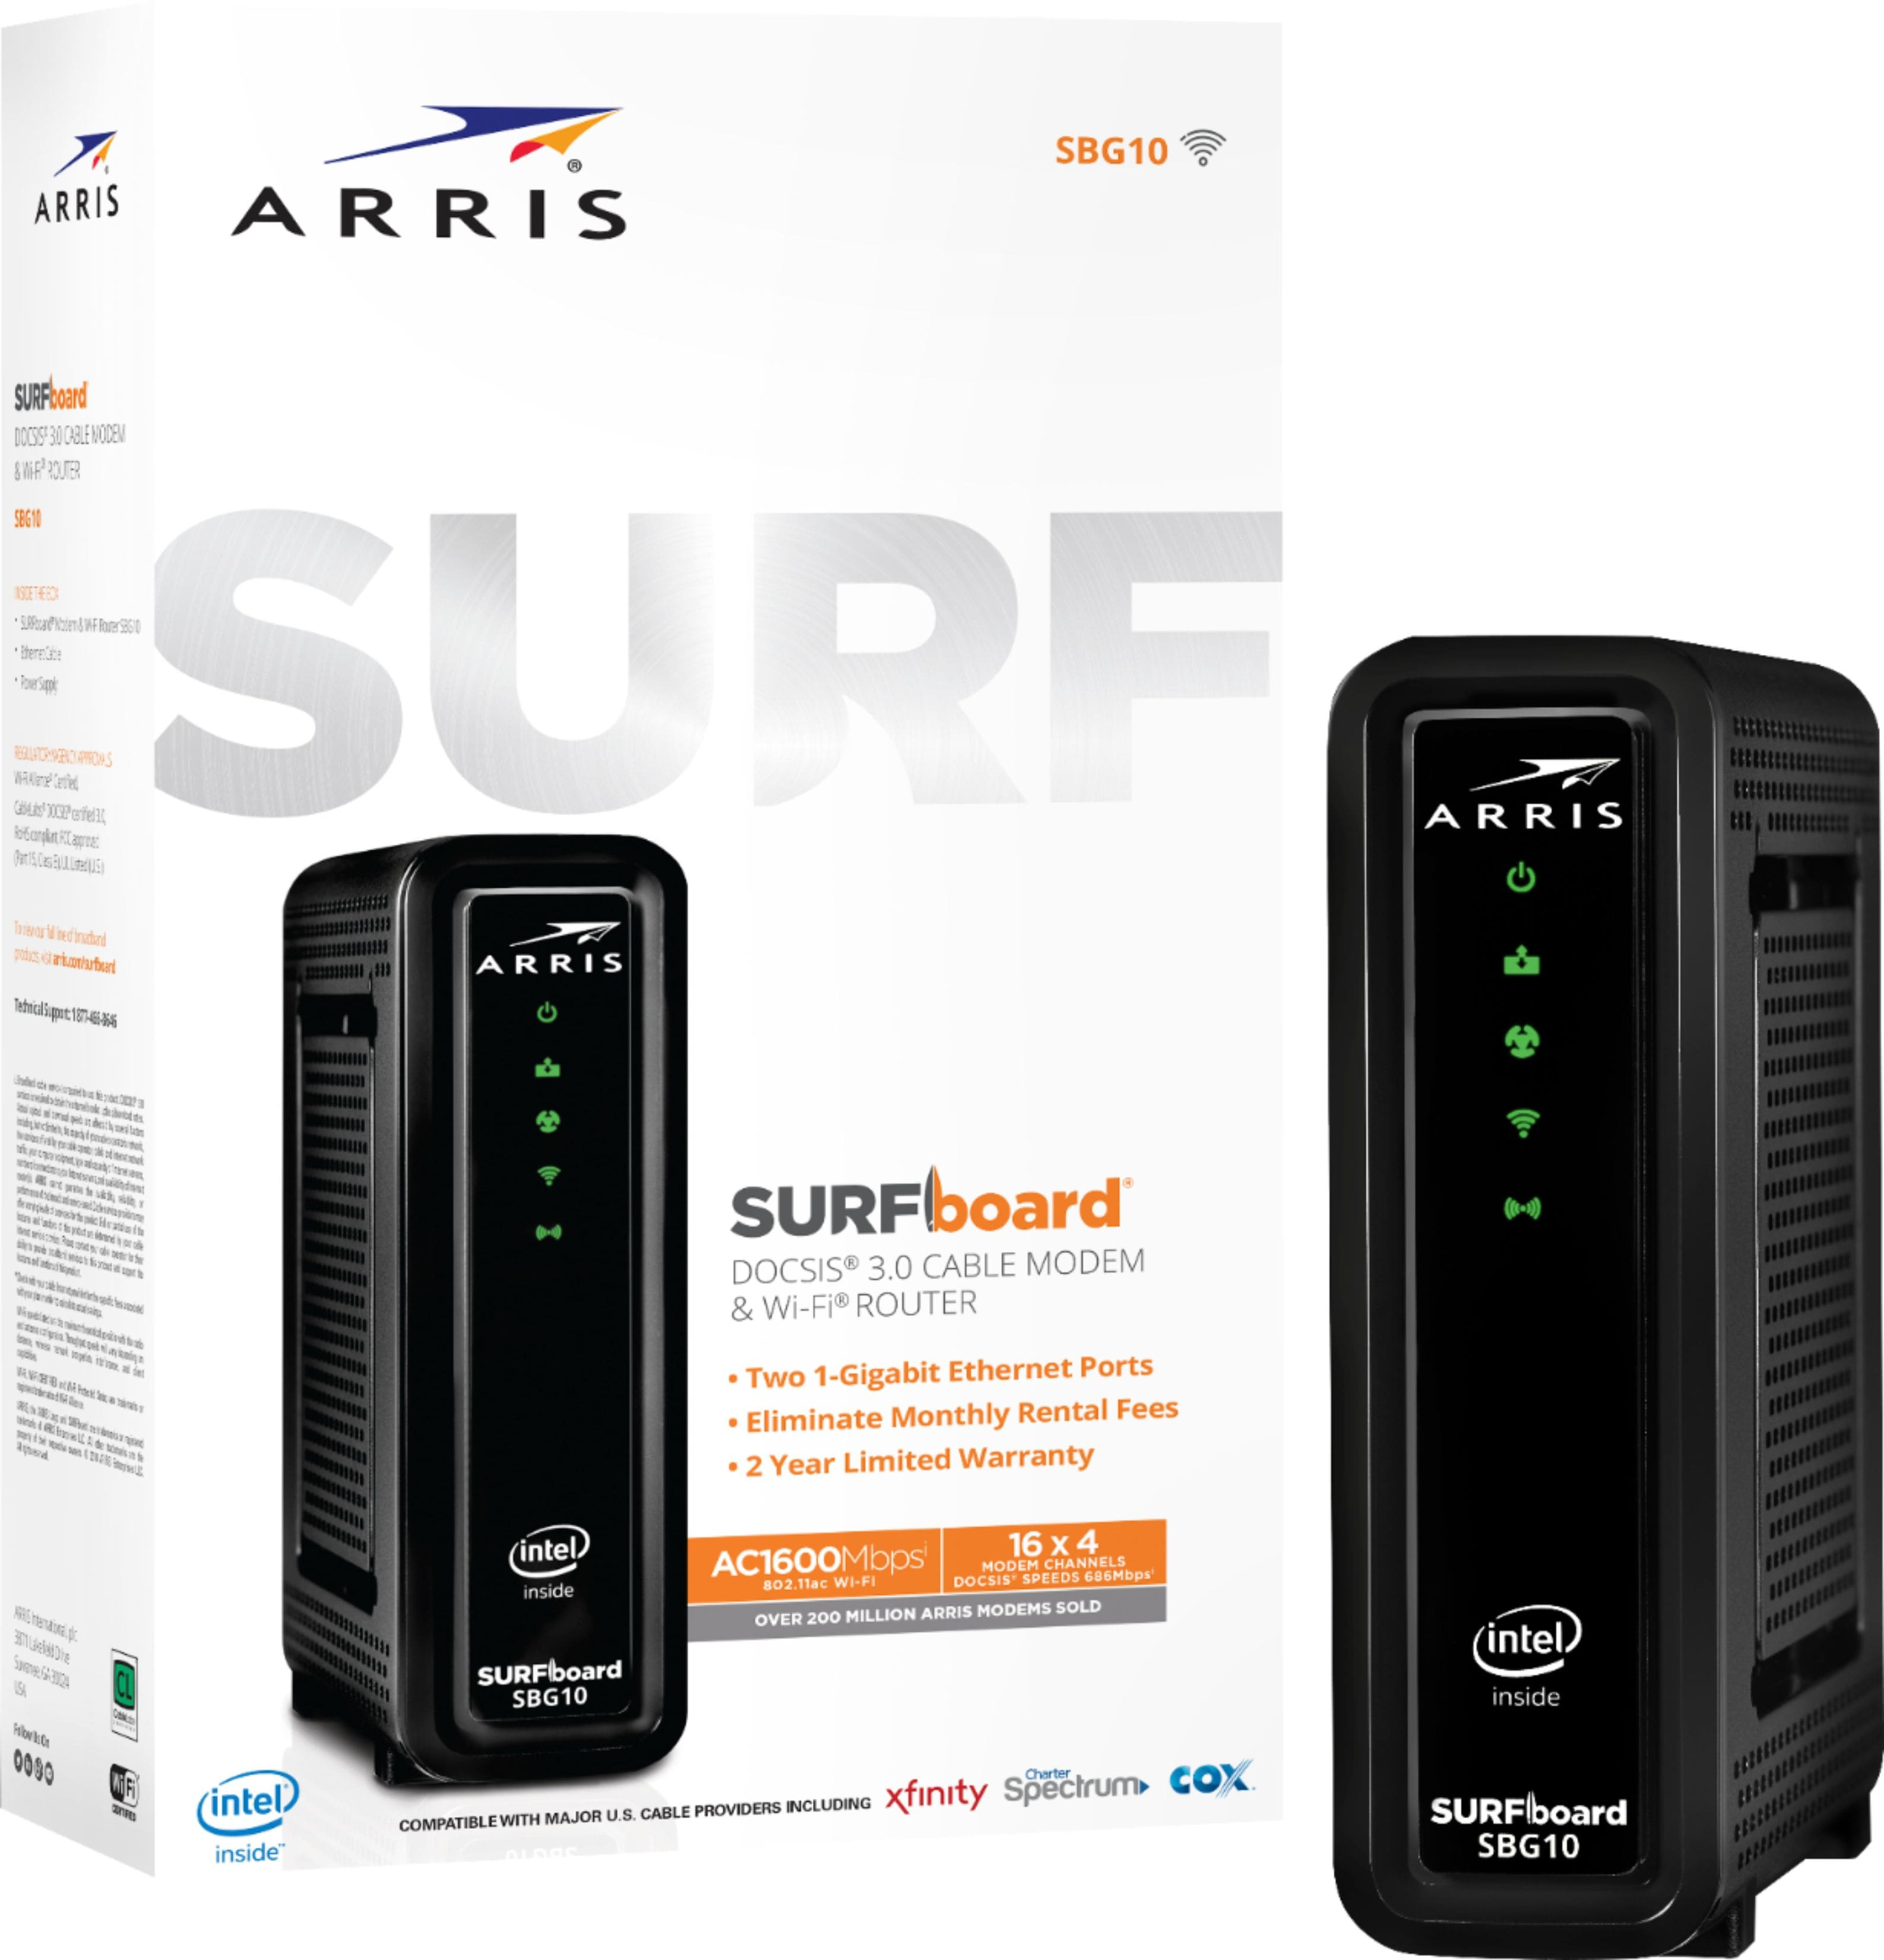 ARRIS - SURFboard AC1600 Dual-Band Router with 16 x 4 DOCSIS 3.0 Cable Modem - Black $100